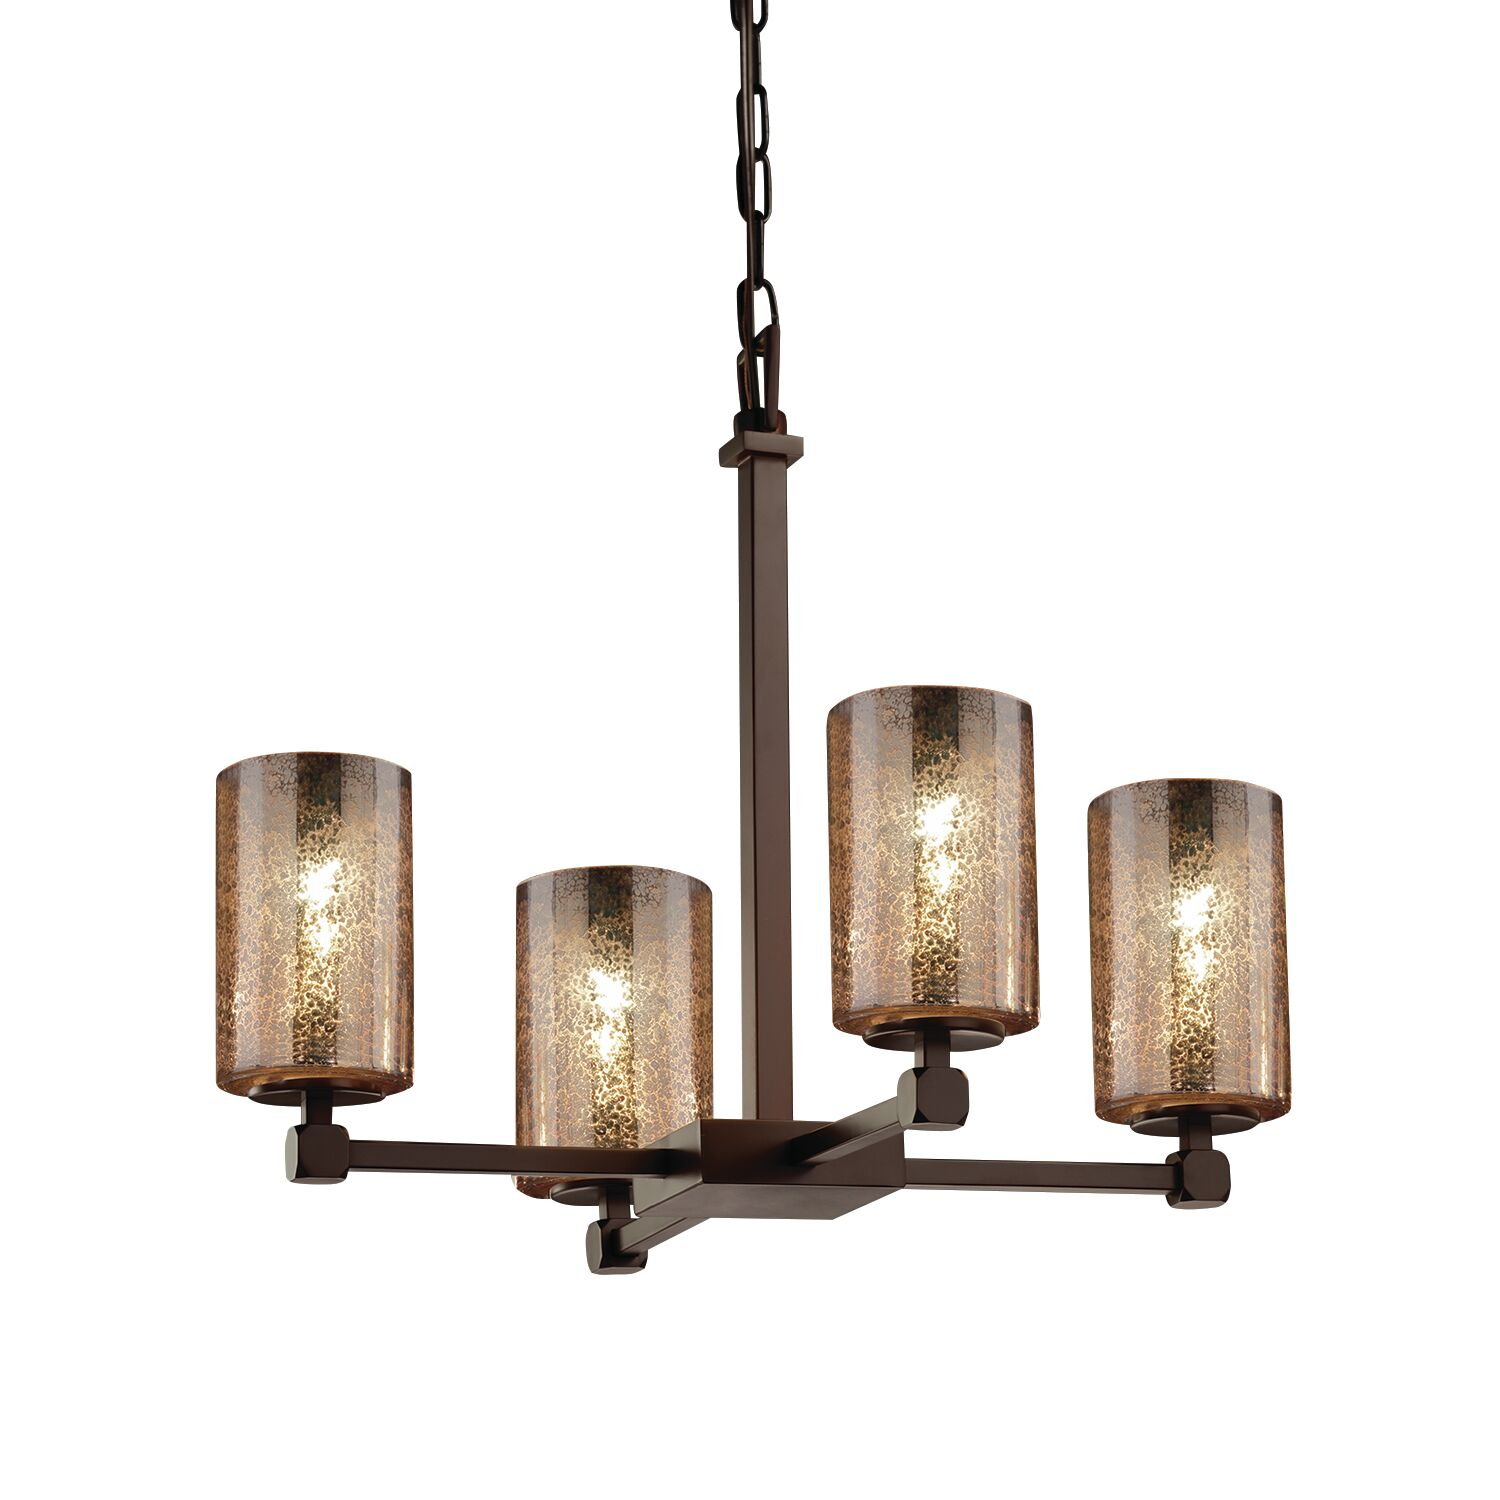 Luzerne 4-Light Shaded Chandelier Finish: Brushed Nickel, Shade Color: Almond